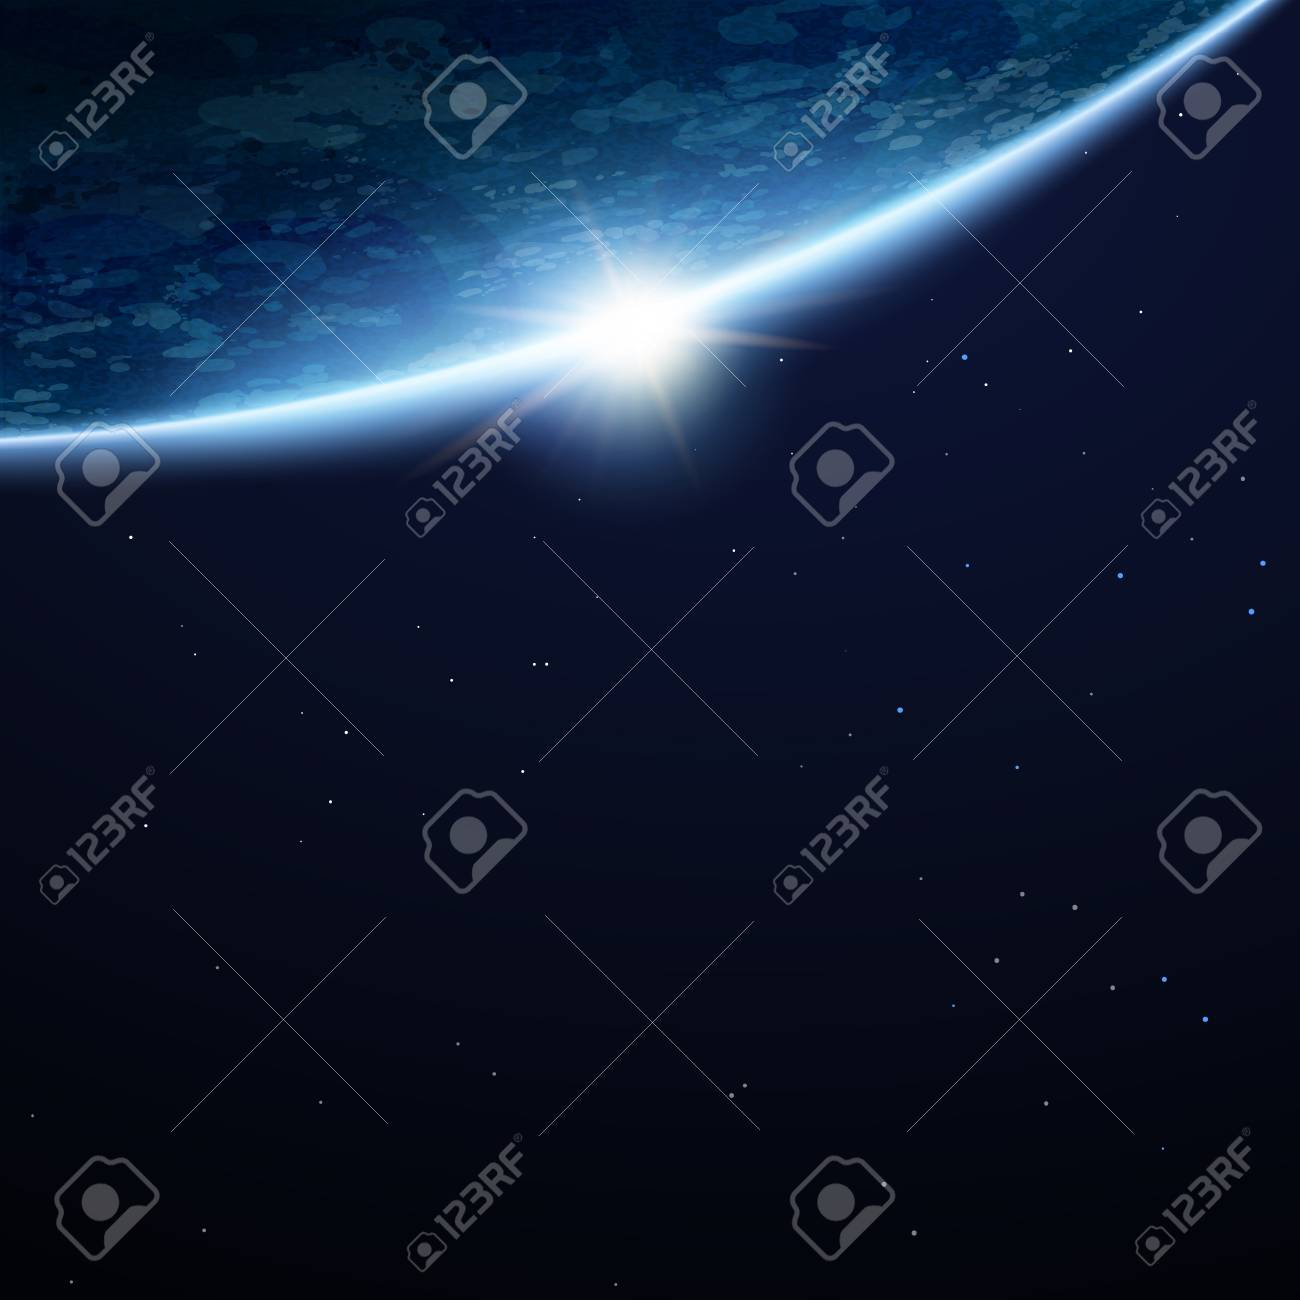 Beautiful space earth background with copy space and stars in 3d illustration - 109791289